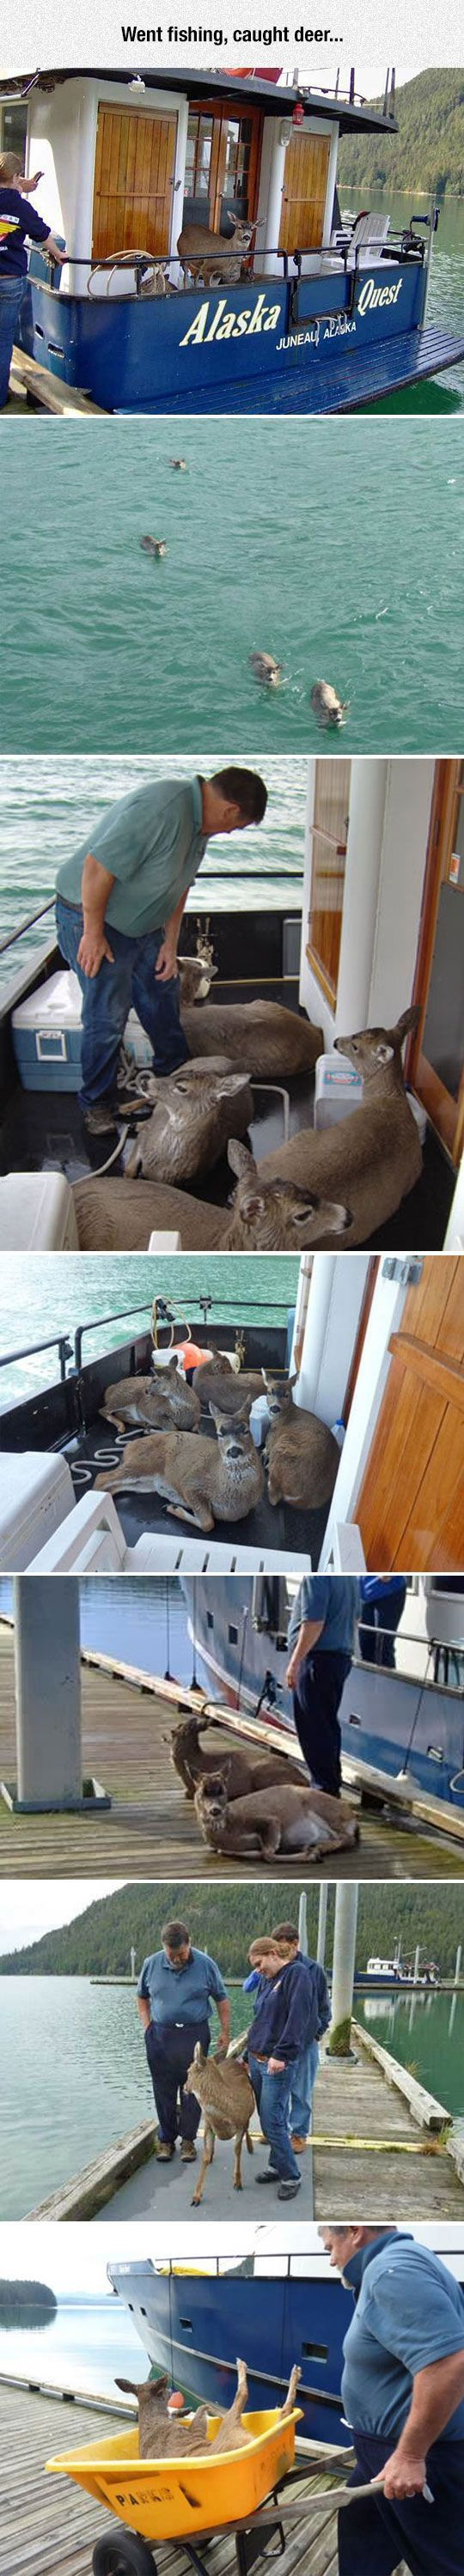 Exhausted deer rescued by Alaskan fisherman. The most exhausted deer was helped off the boat on a wheelbarrow,